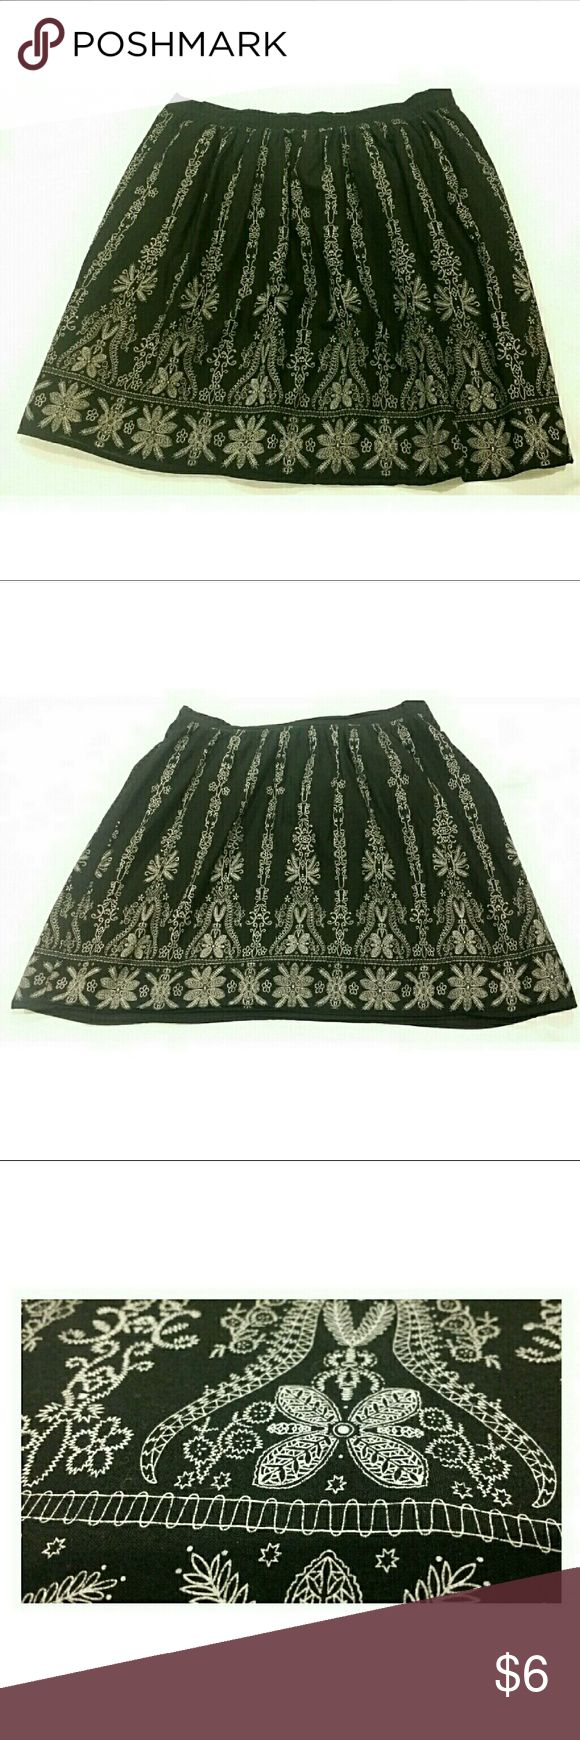 "🔥3/$10 CUTE RETRO COTTON SKIRT BLACK WHITE 🔥🔥🔥THIS ITEM IS PART OF MY 3/$10 SALE! BUNDLE WITH 2 MORE ITEMS MARKED WITH 🔥 & YOU WILL GET ALL 3 LISTINGS FOR $10!!!🔥🔥  This versatile skirt is lightweight, lined, & ready for action! It has a printed on ""embroidery"" design (see pic). Cute retro look! This skirt kinda has that ""bell"" shape with fitted waist & a little bit of ""poof"" even sans a petticoat Skirts Midi"